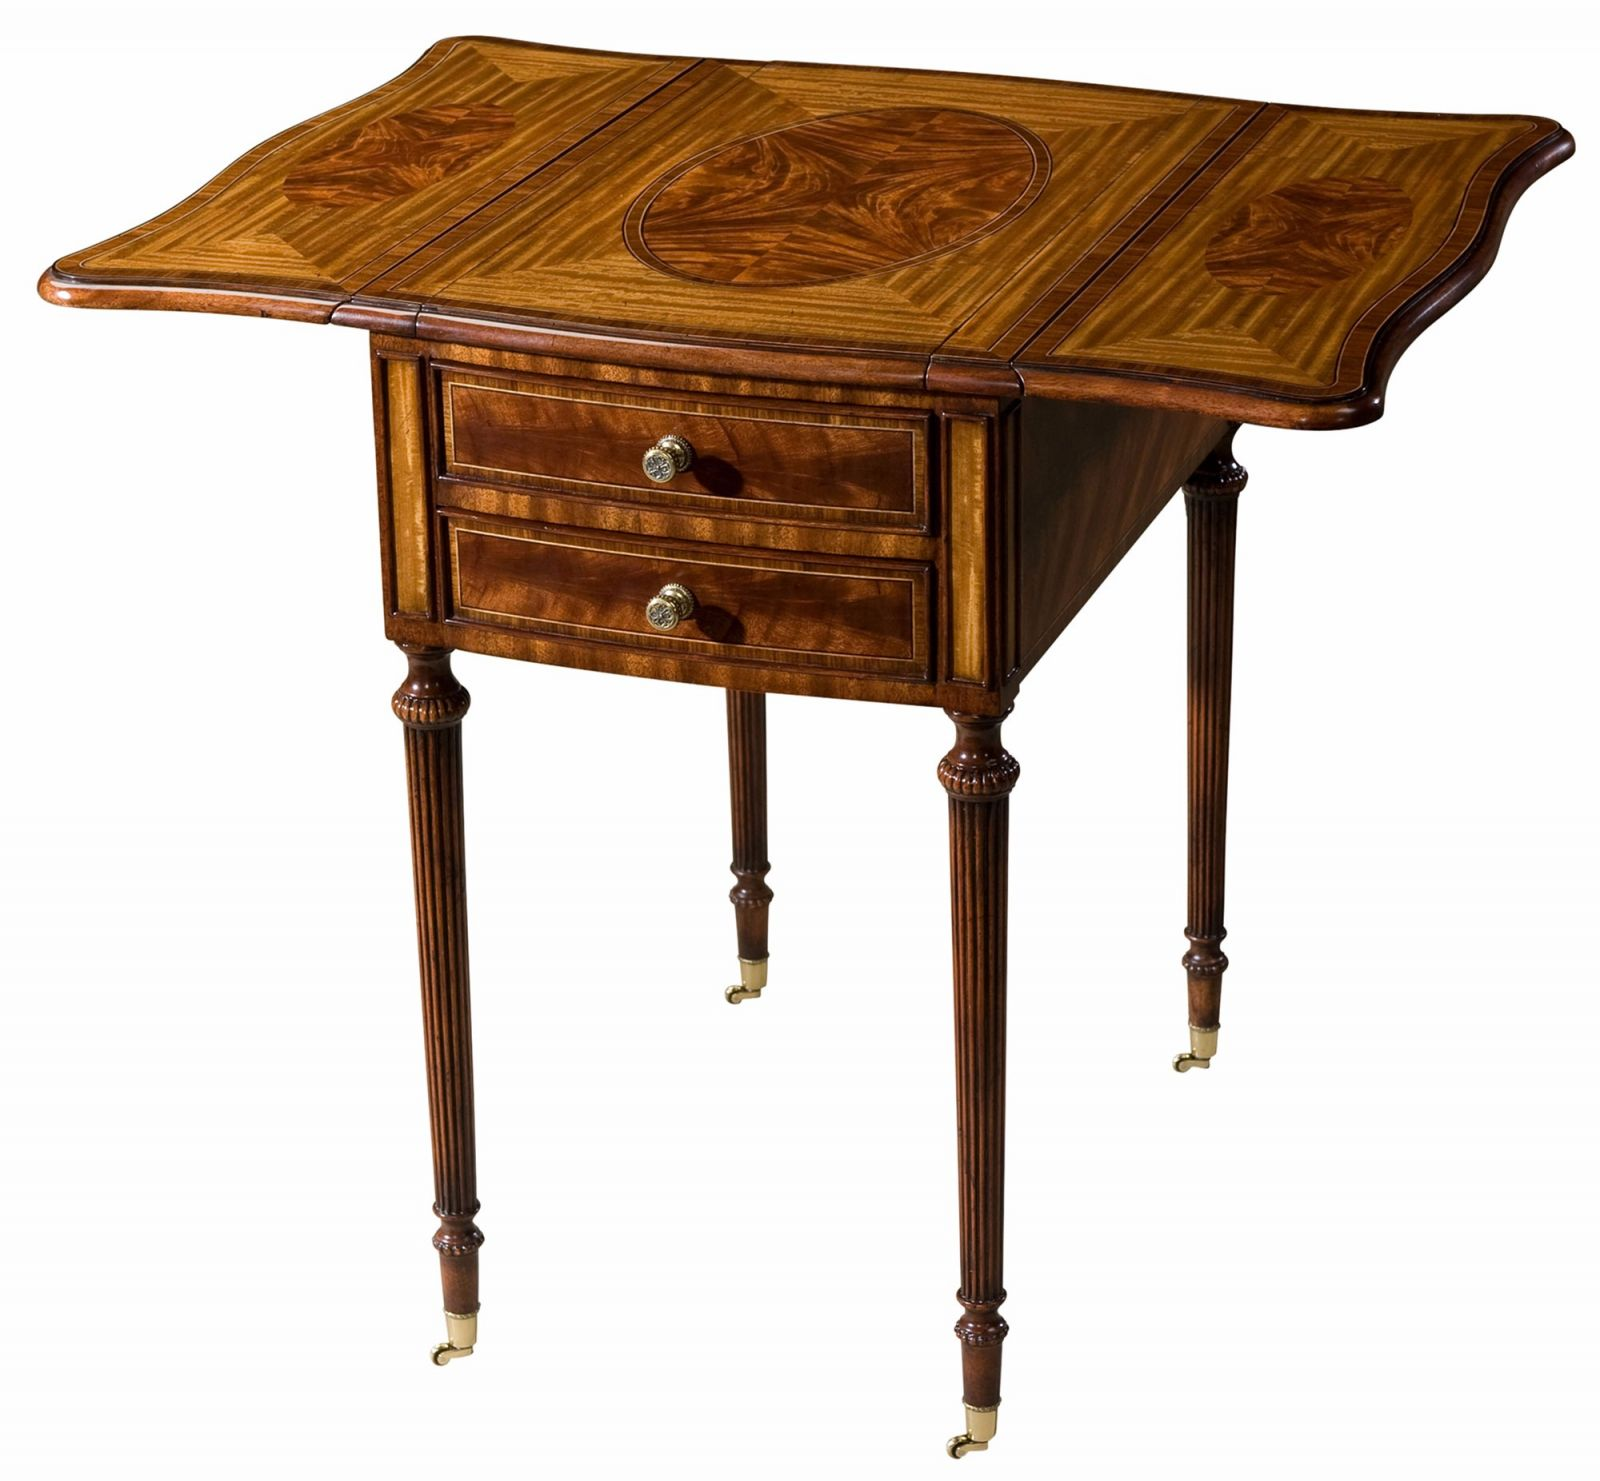 A Harlequin table